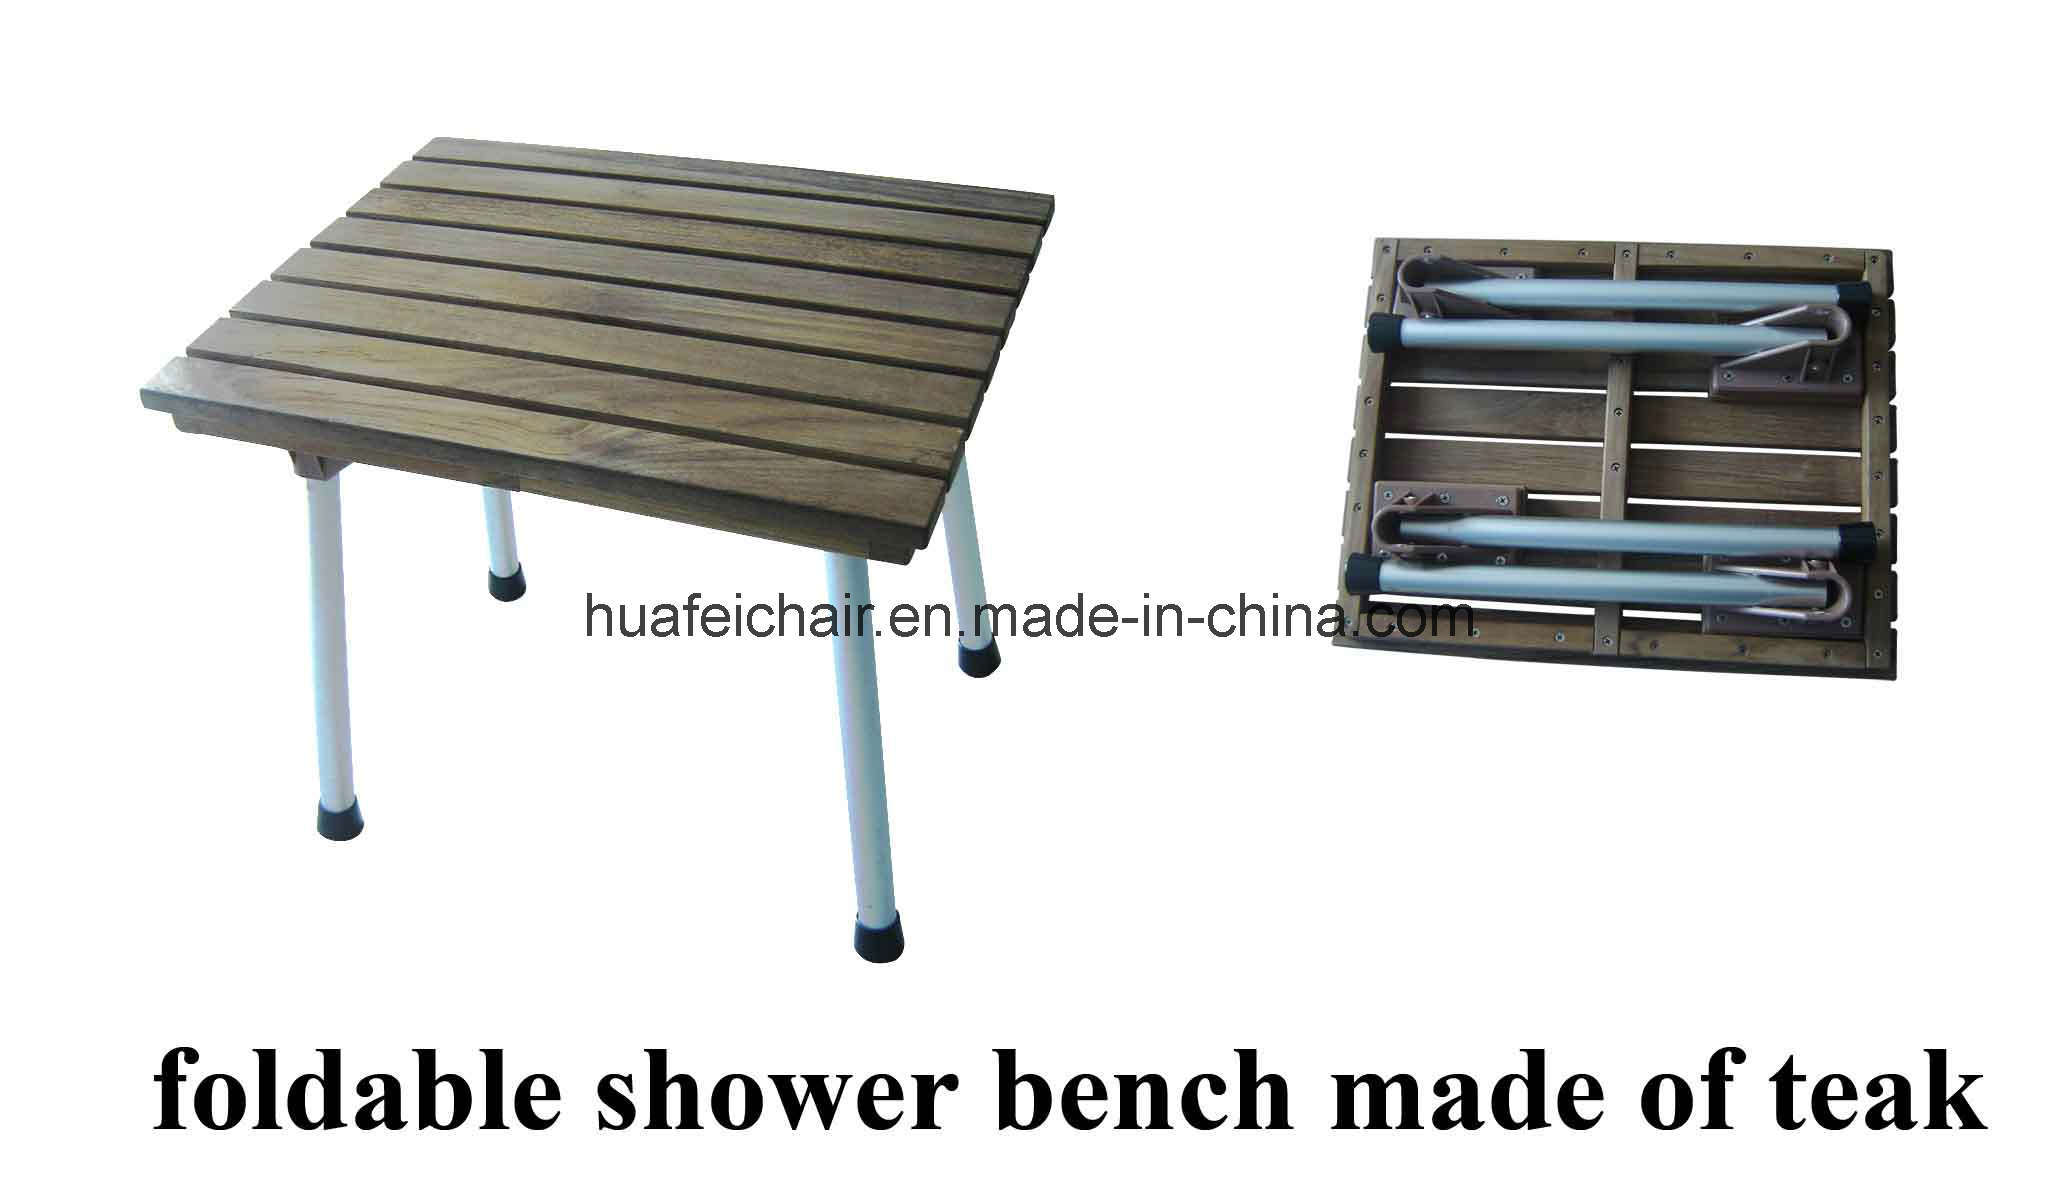 Banquette douche great hammam effegibi logica twin lo for Banc teck douche